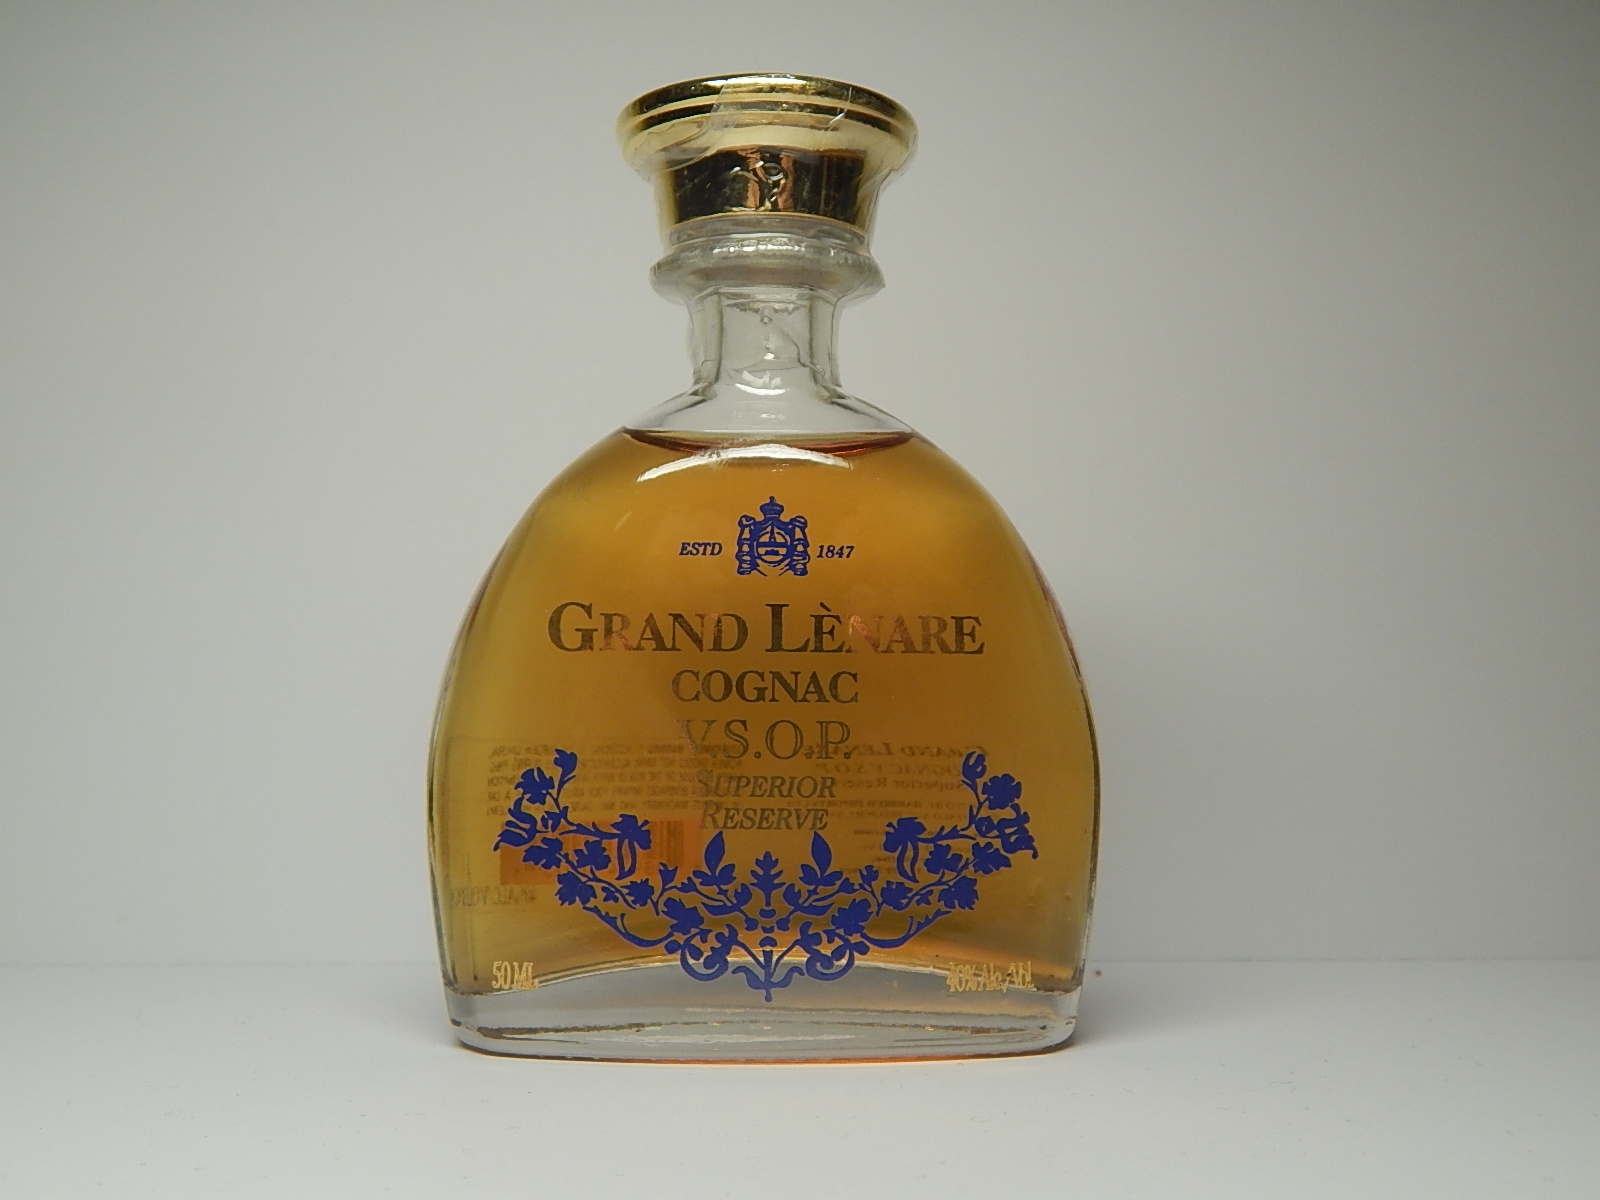 GRAND LENARE VSOP Superior Cognac